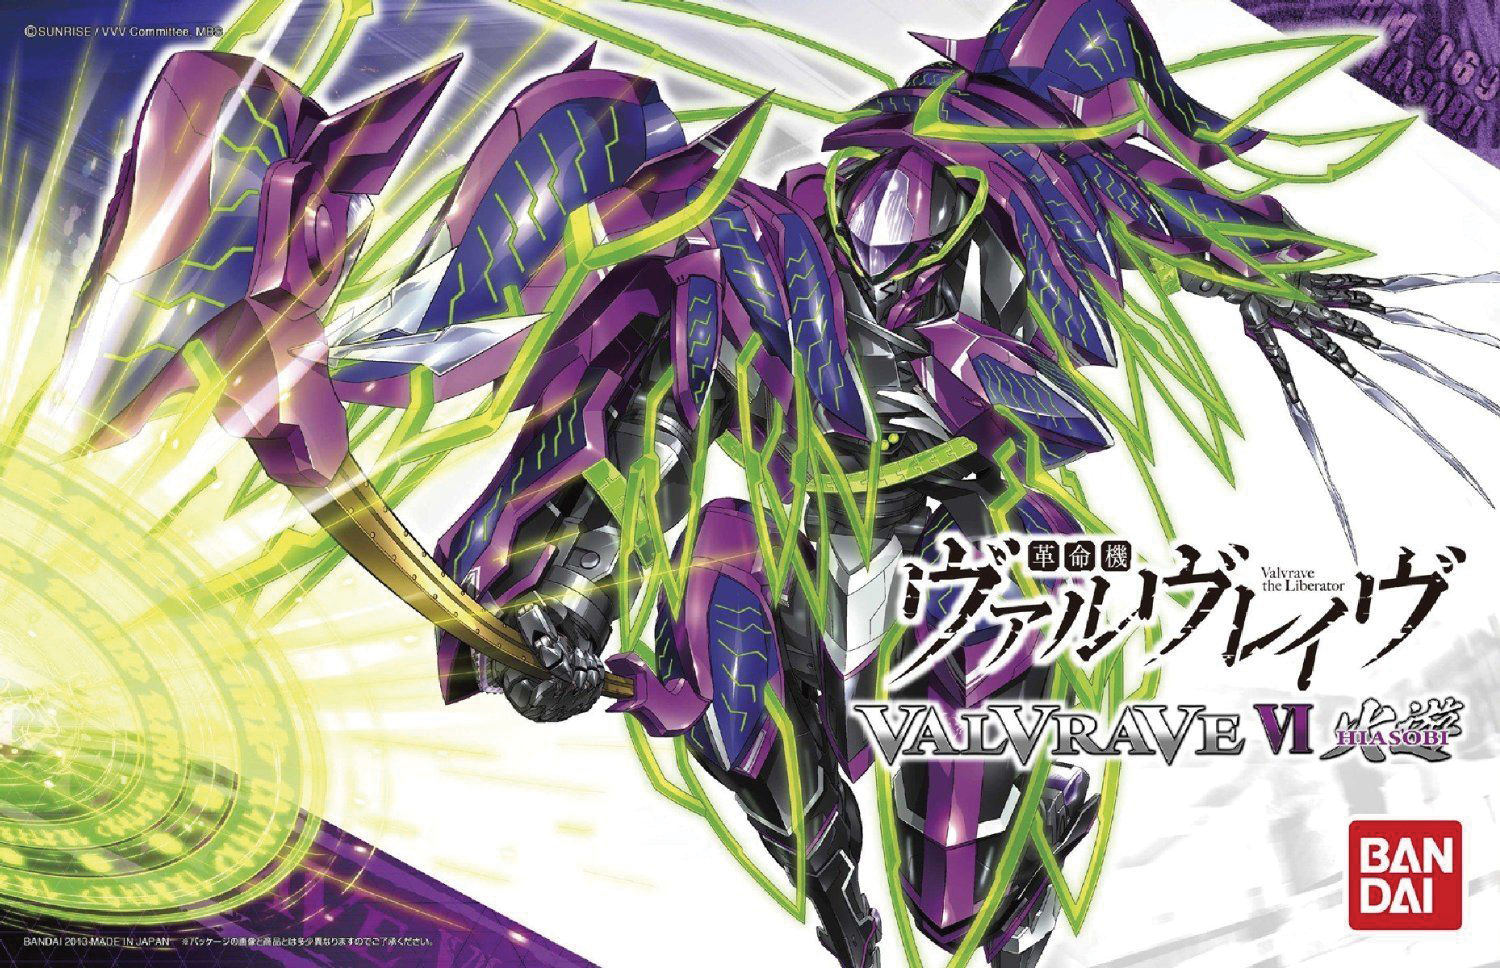 Valvrave Model Kit: #6 Valvrave VI Hiasobi High Grade (1/144) 4543112862327